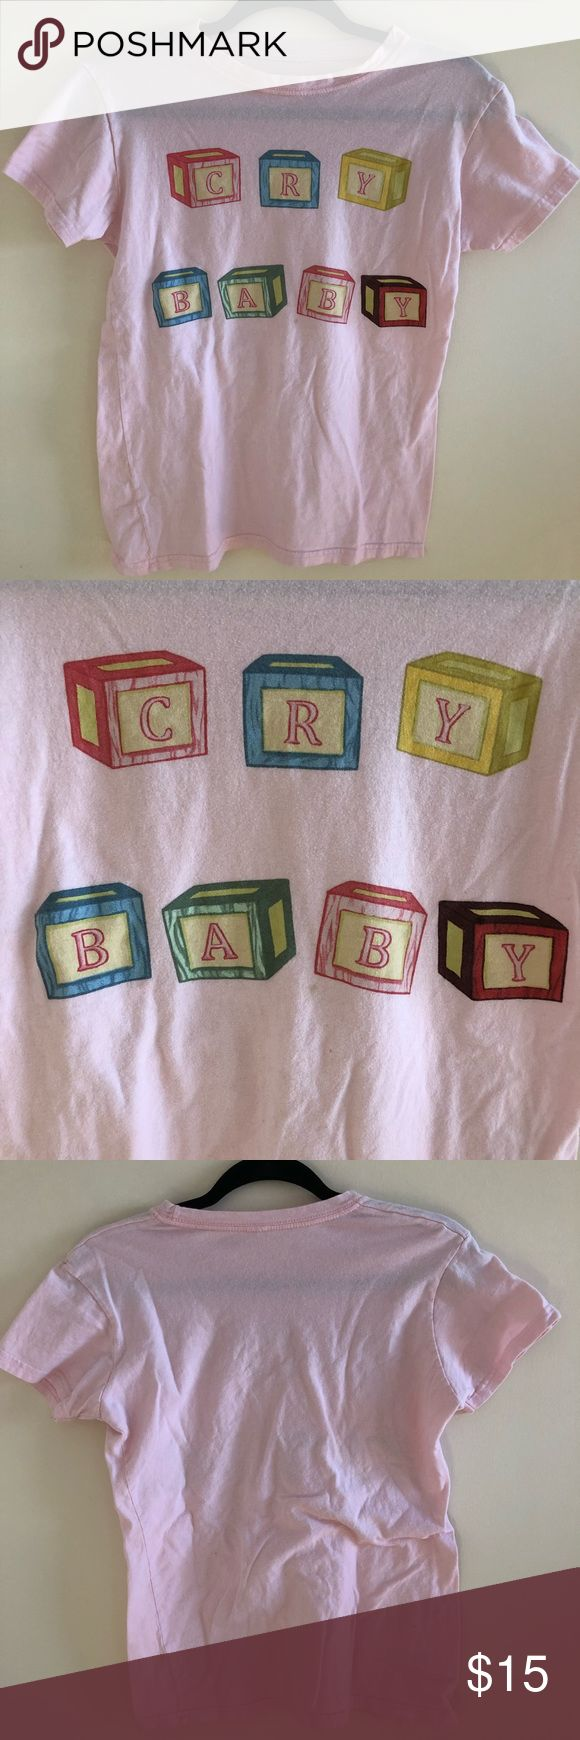 """👶🍼 CRYBABY MELANIE MARTINEZ PINK SHIRT A light pink shirt from Melanie Martinez's Cry Baby album. Says """"Cry Baby"""" in block letters. She is an artist I cannot enjoy anymore due to allegations, but if anyone is interested I am selling this shirt. Worn a few times but in good condition! Size tag ripped off but it is a Small. PRICE TOO HIGH? MAKE AN OFFER!! Hot Topic Tops Tees - Short Sleeve"""